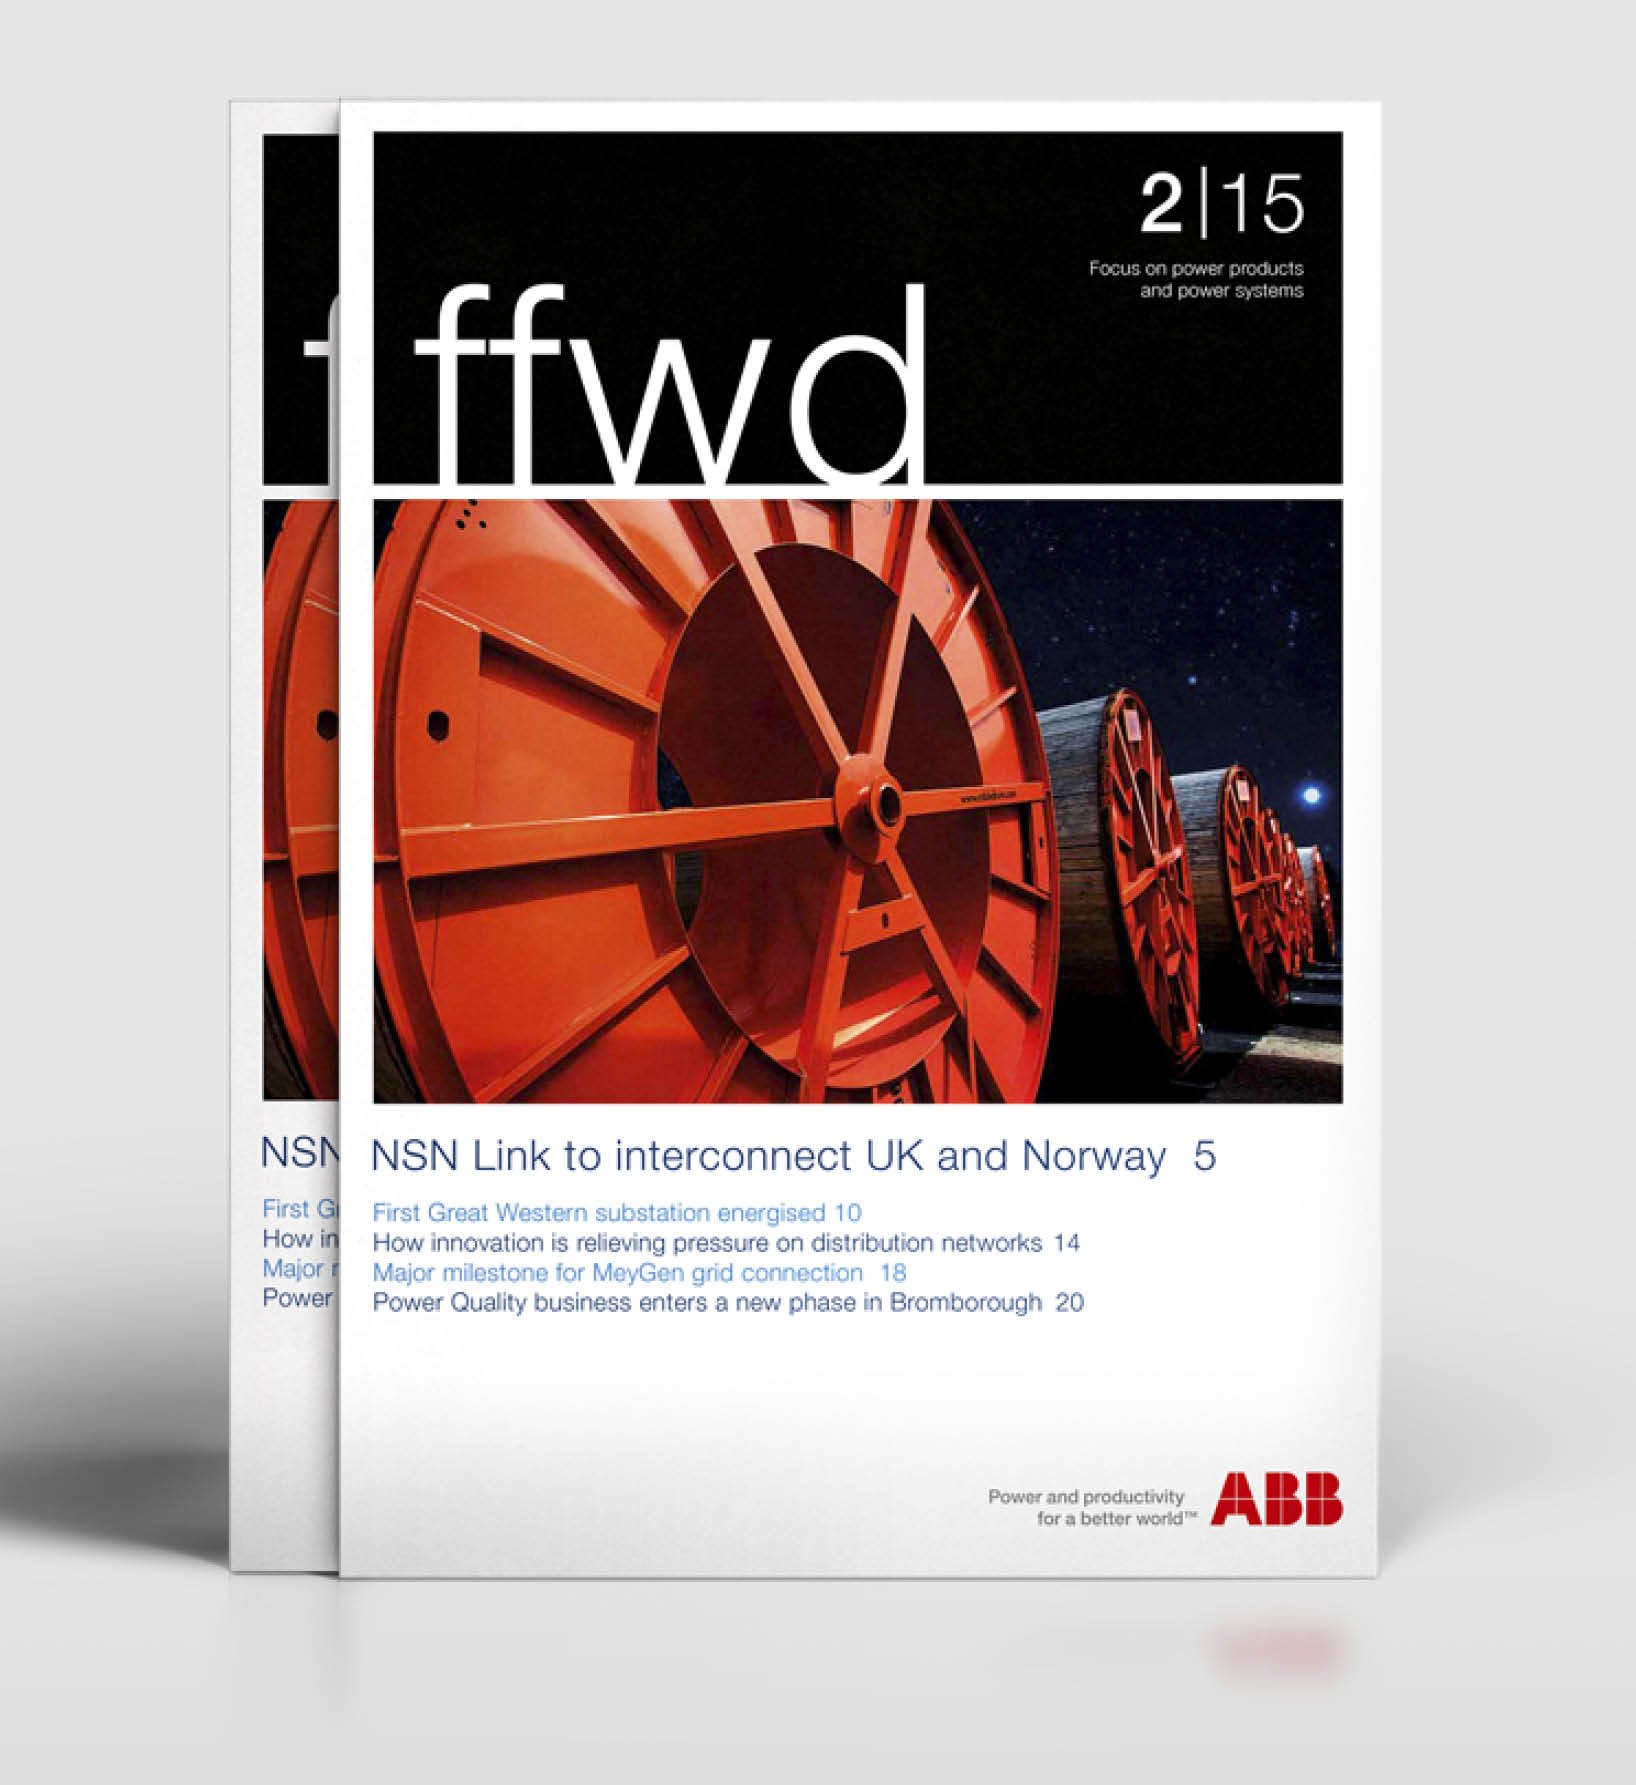 ABB FFWD Customer Magazine